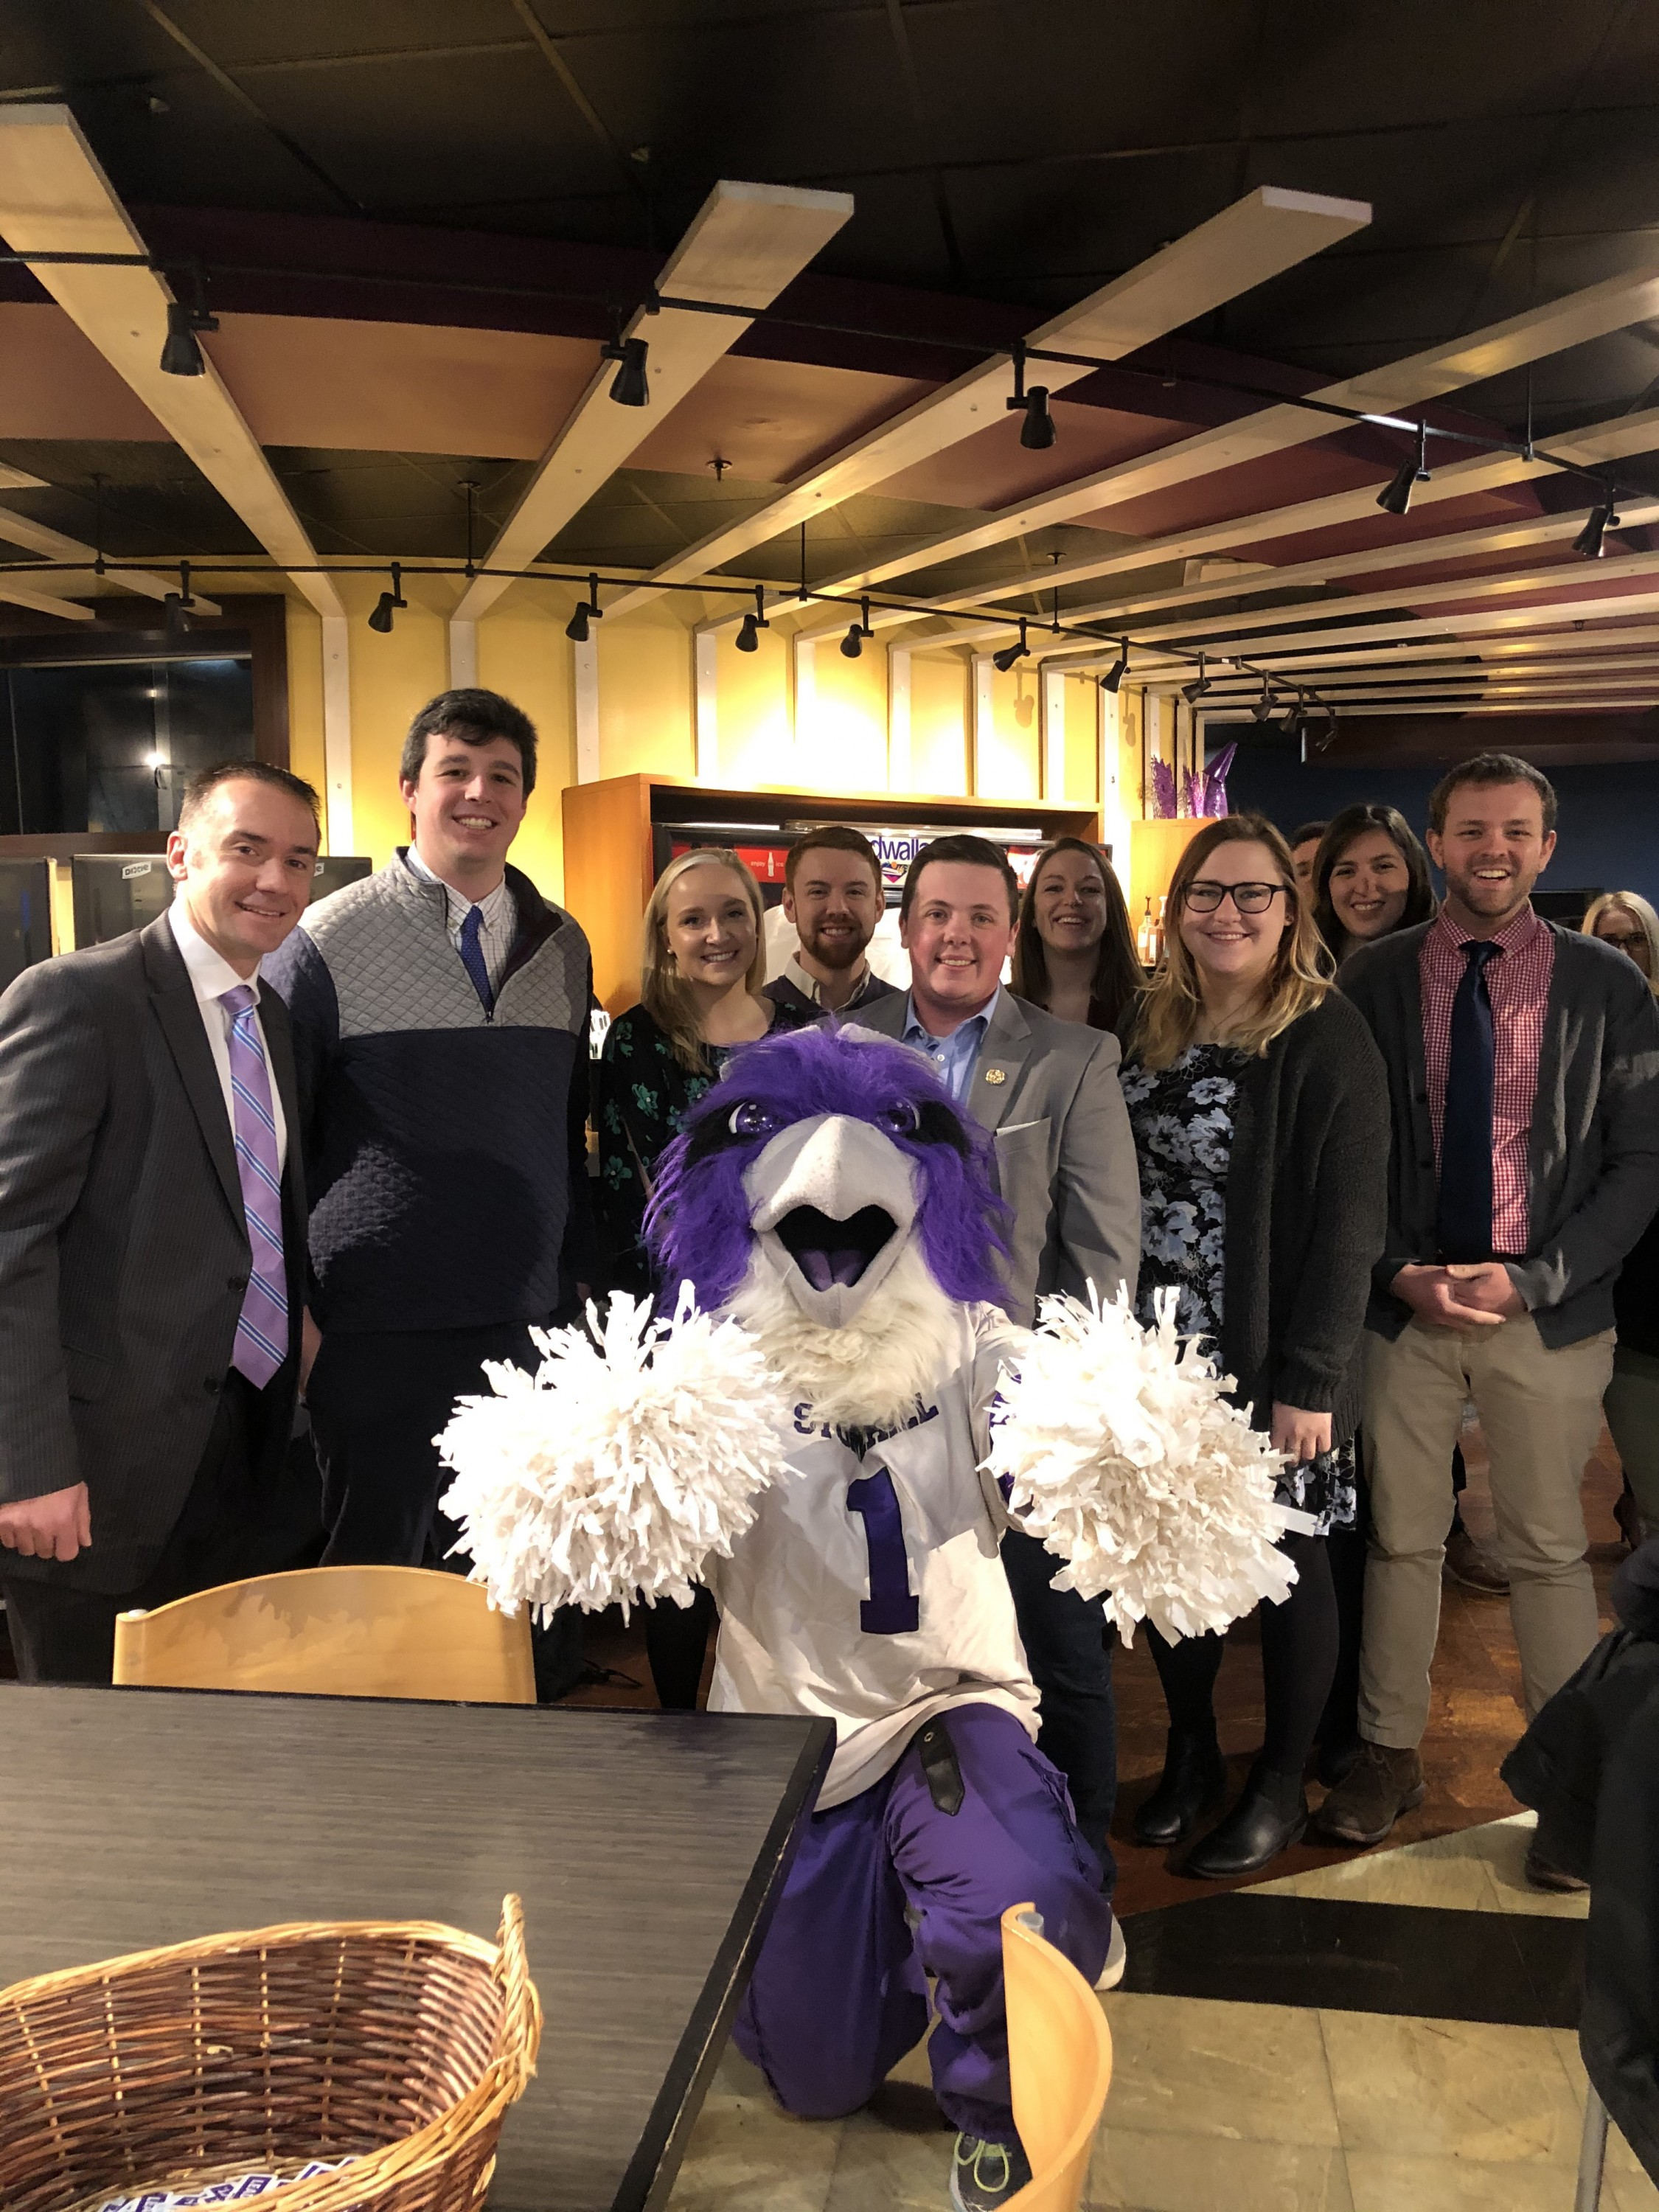 Ace the Skyhawk joins alumni and students for the Think. Act. Lead Conference